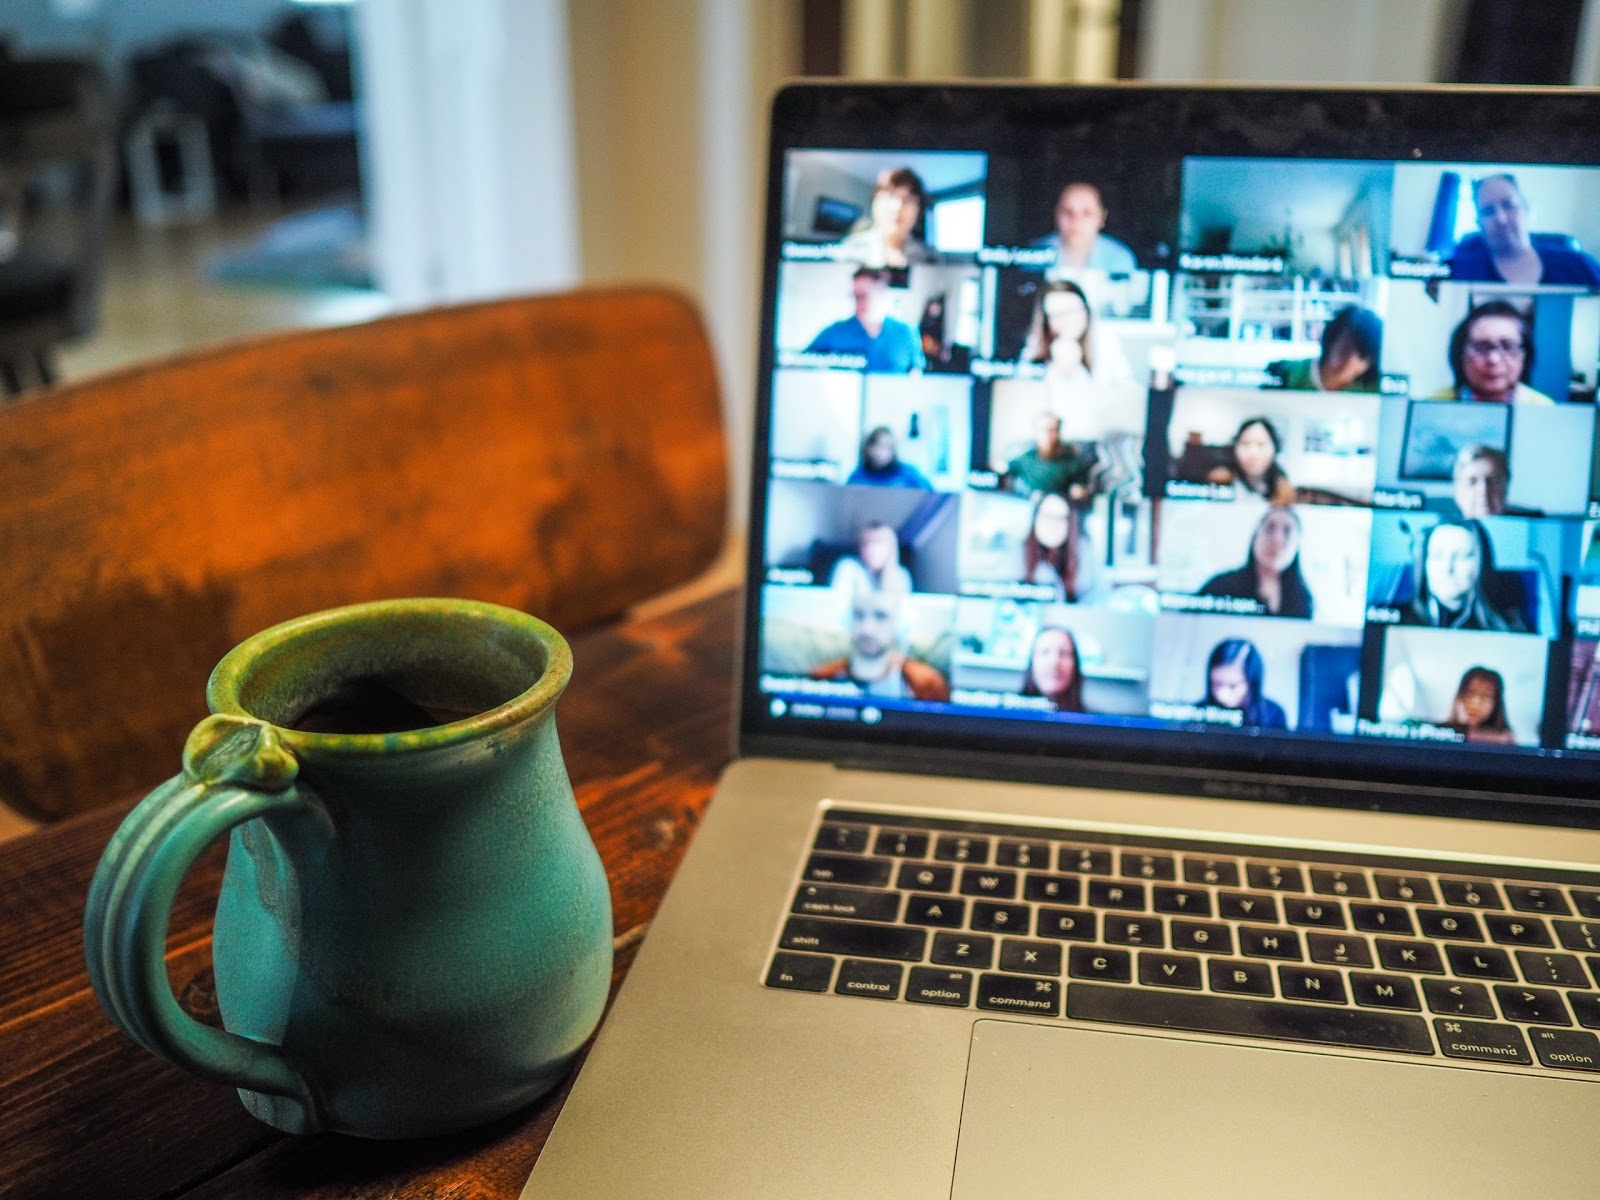 A virtual support group takes place on someone's laptop.